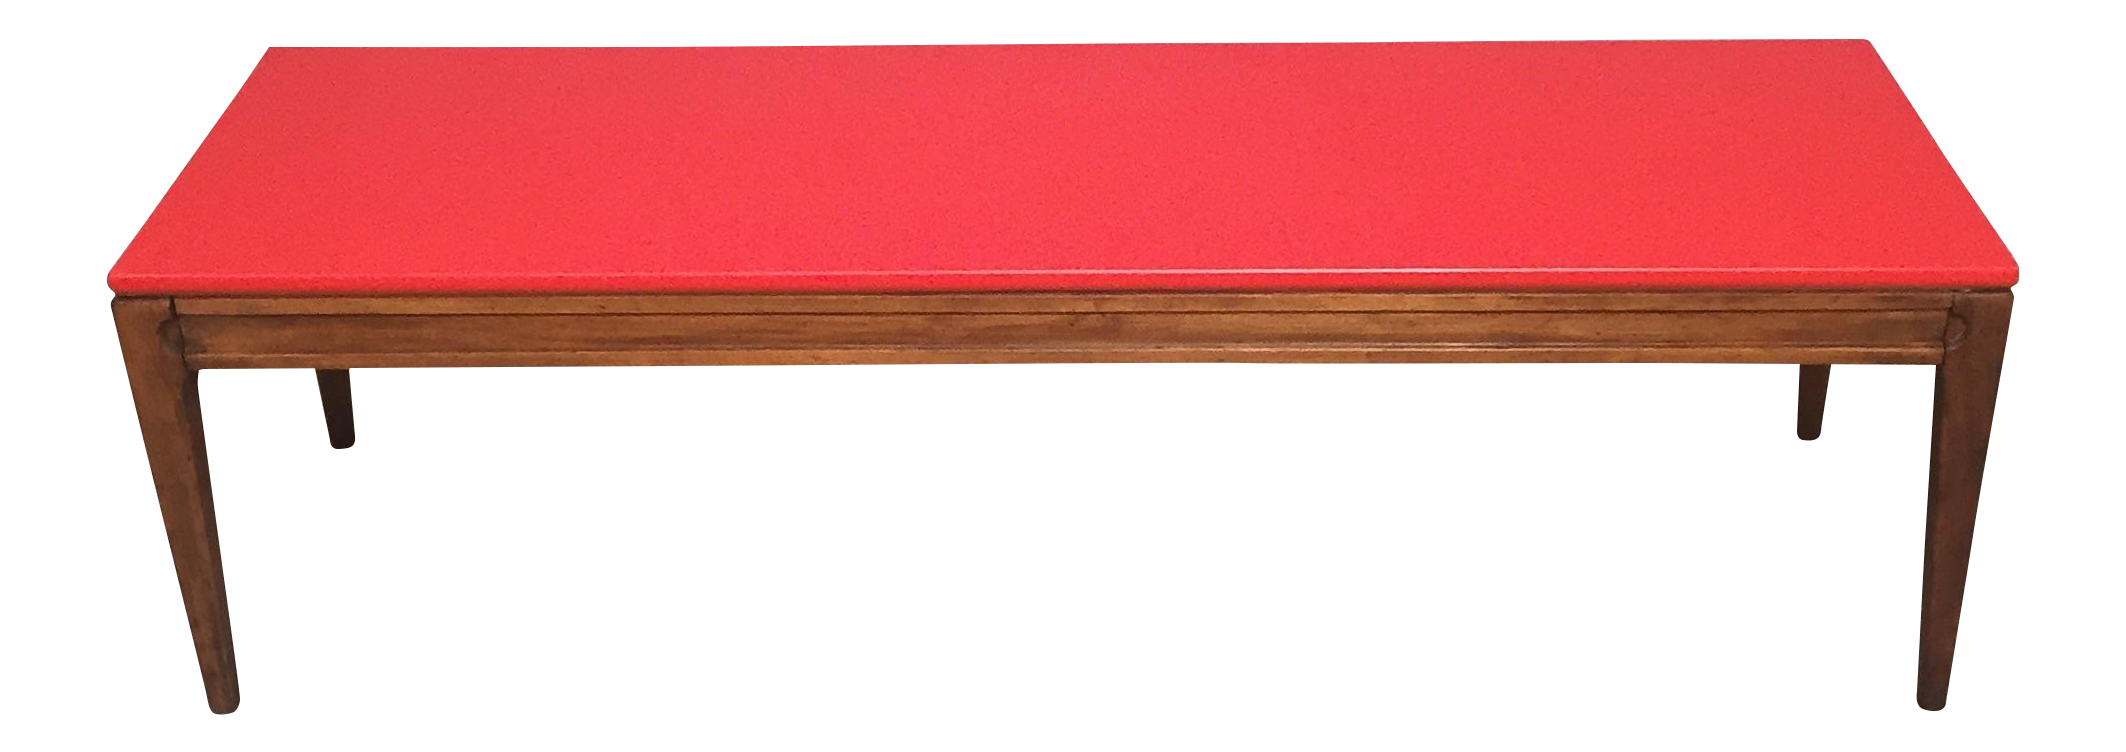 Mid Century Modern Red Coffee Table